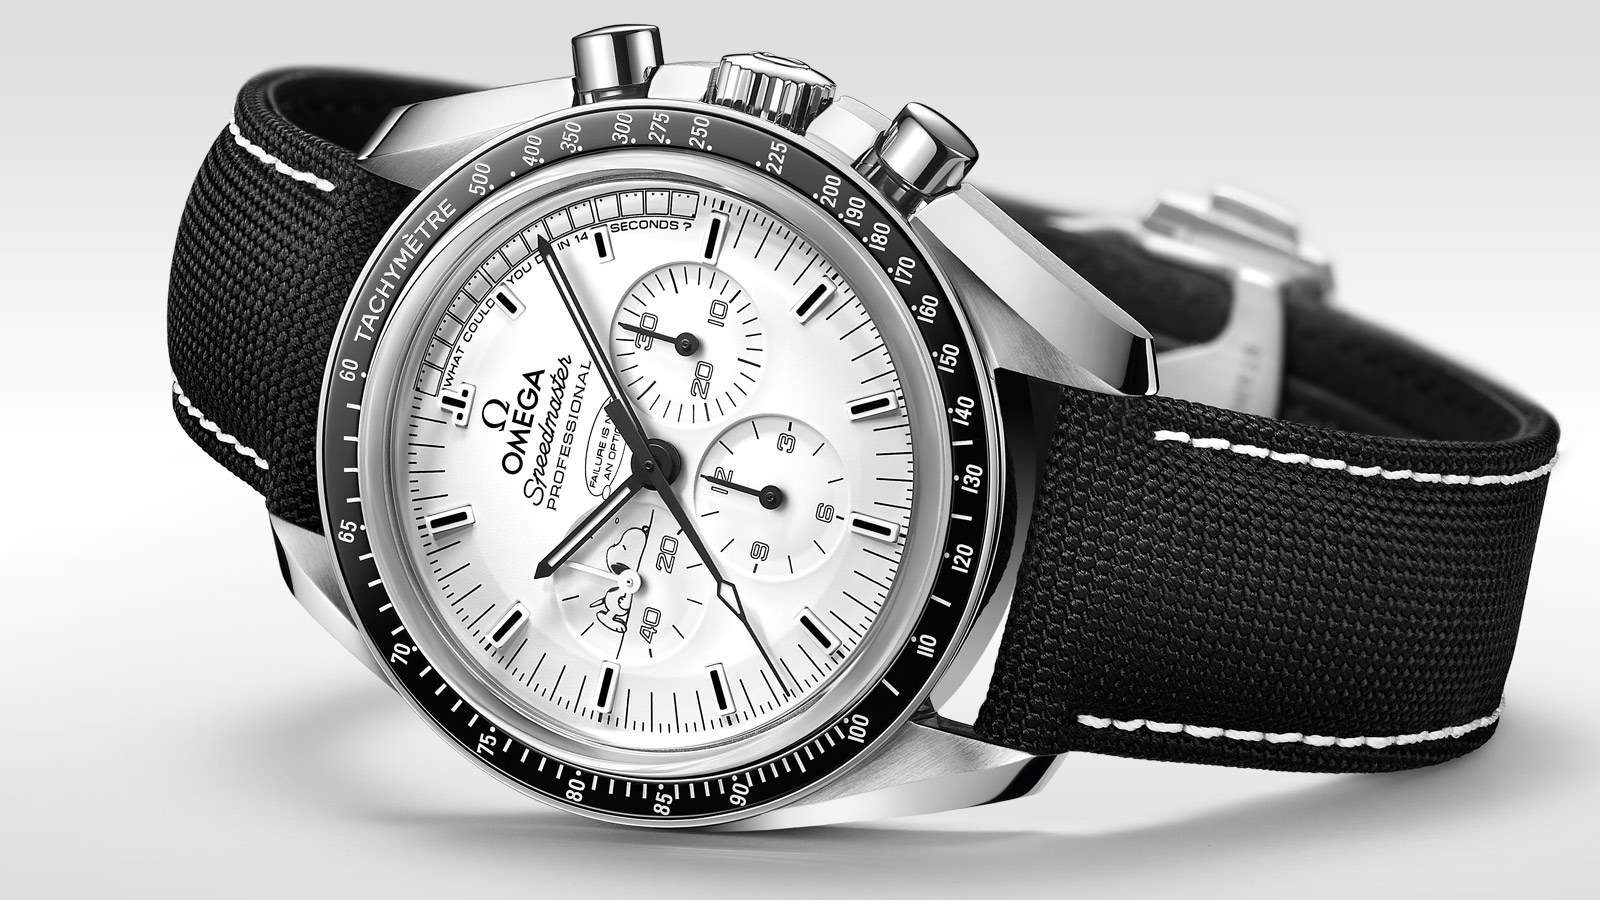 Speedmaster Moonwatch Moonwatch Anniversary Limited Series - 311.32.42.30.04.003 - Anzeigen 3